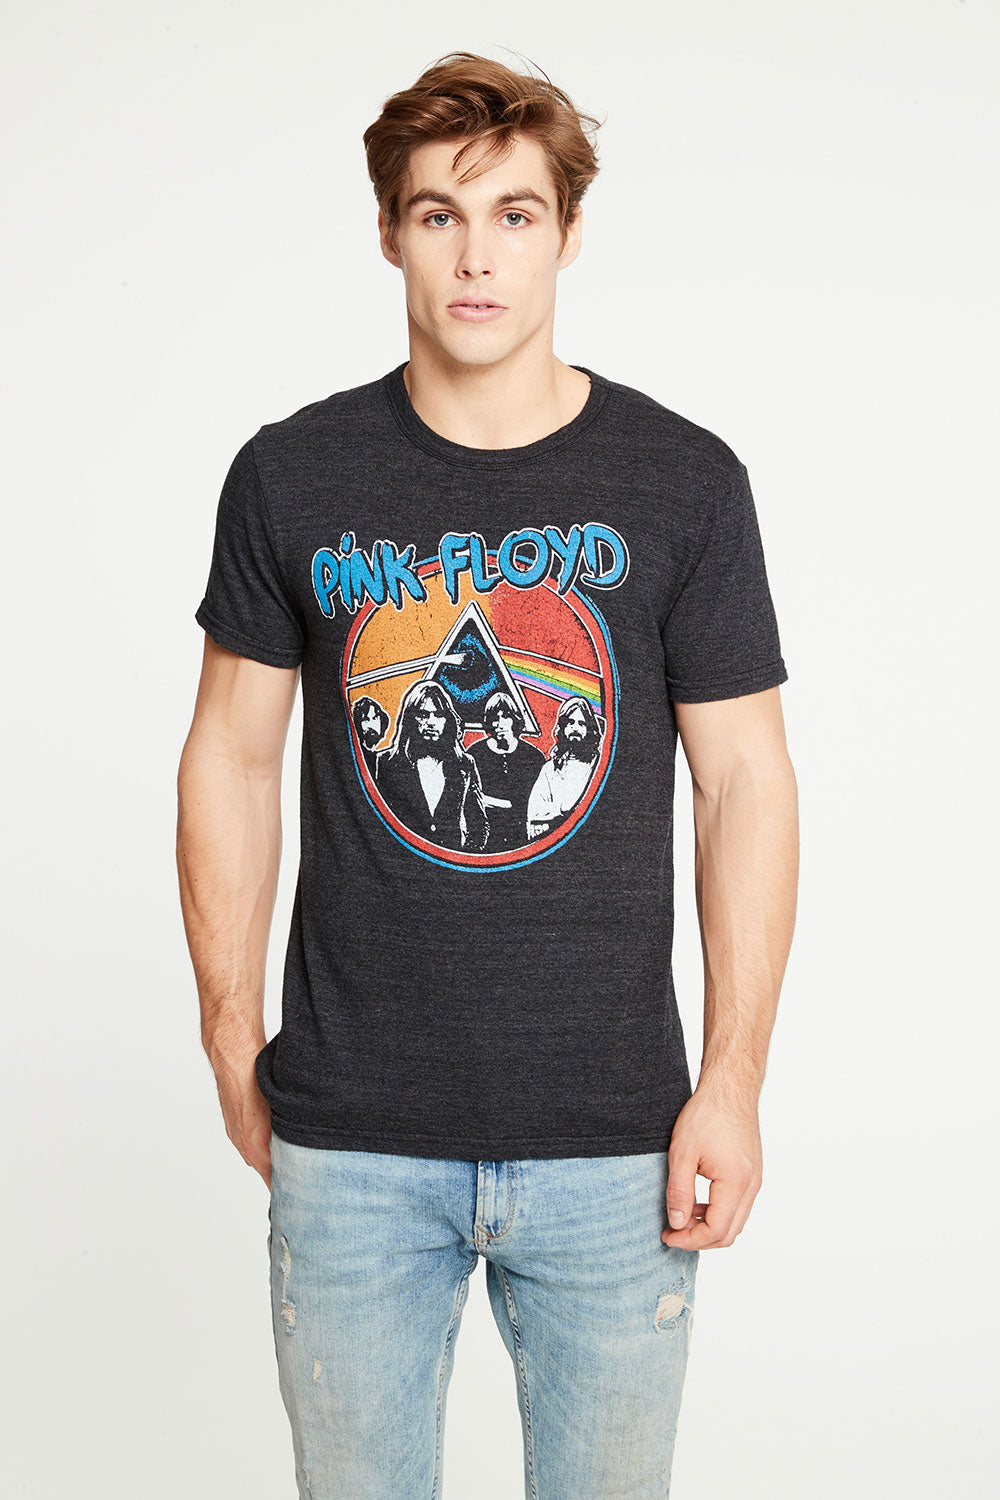 Pink Floyd - The Dark Side Of The Moon MENS chaserbrand4.myshopify.com